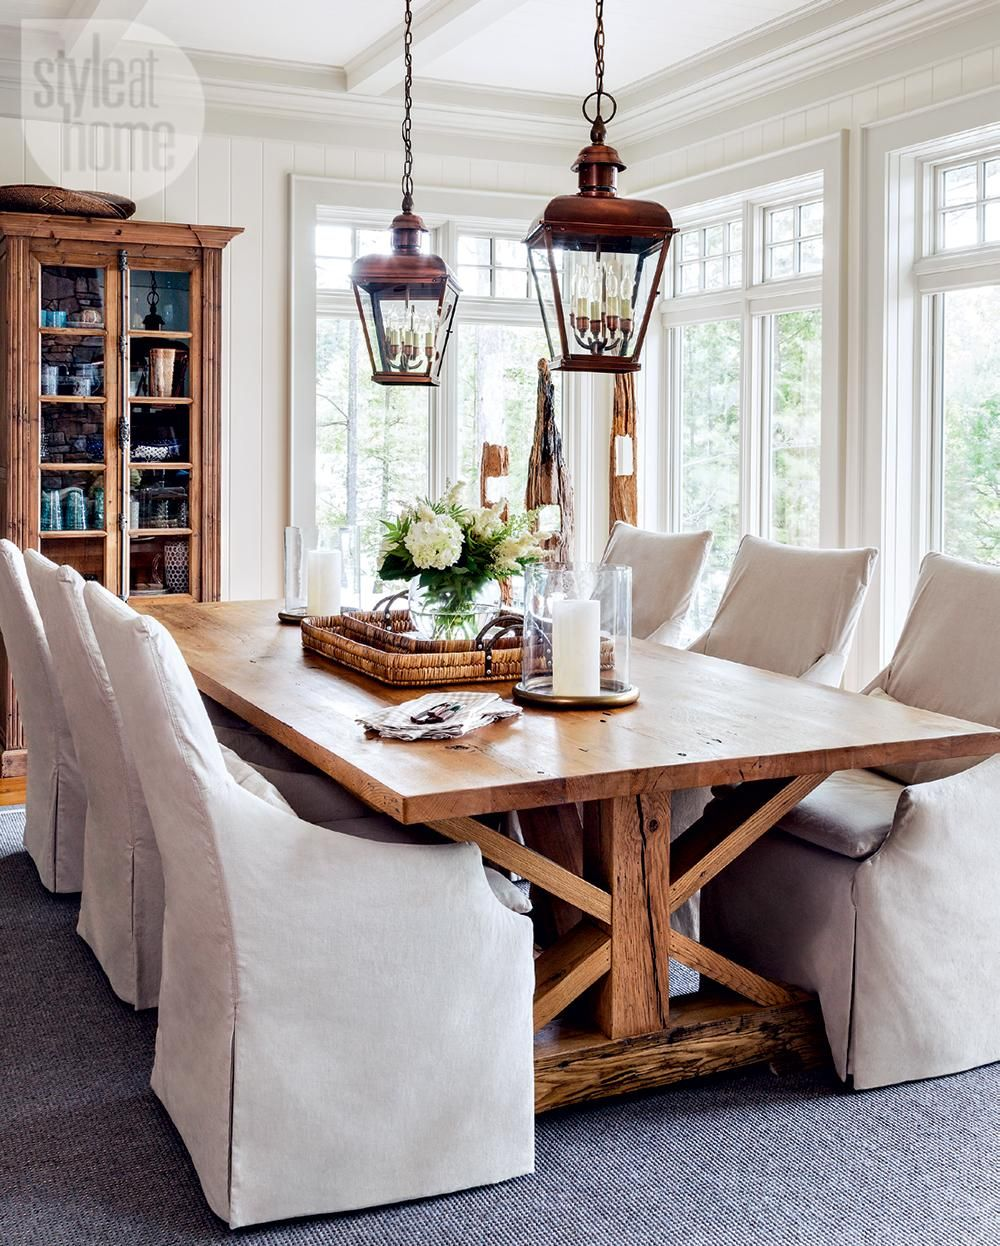 House tour: Country casual cottage | Casual dining rooms ...